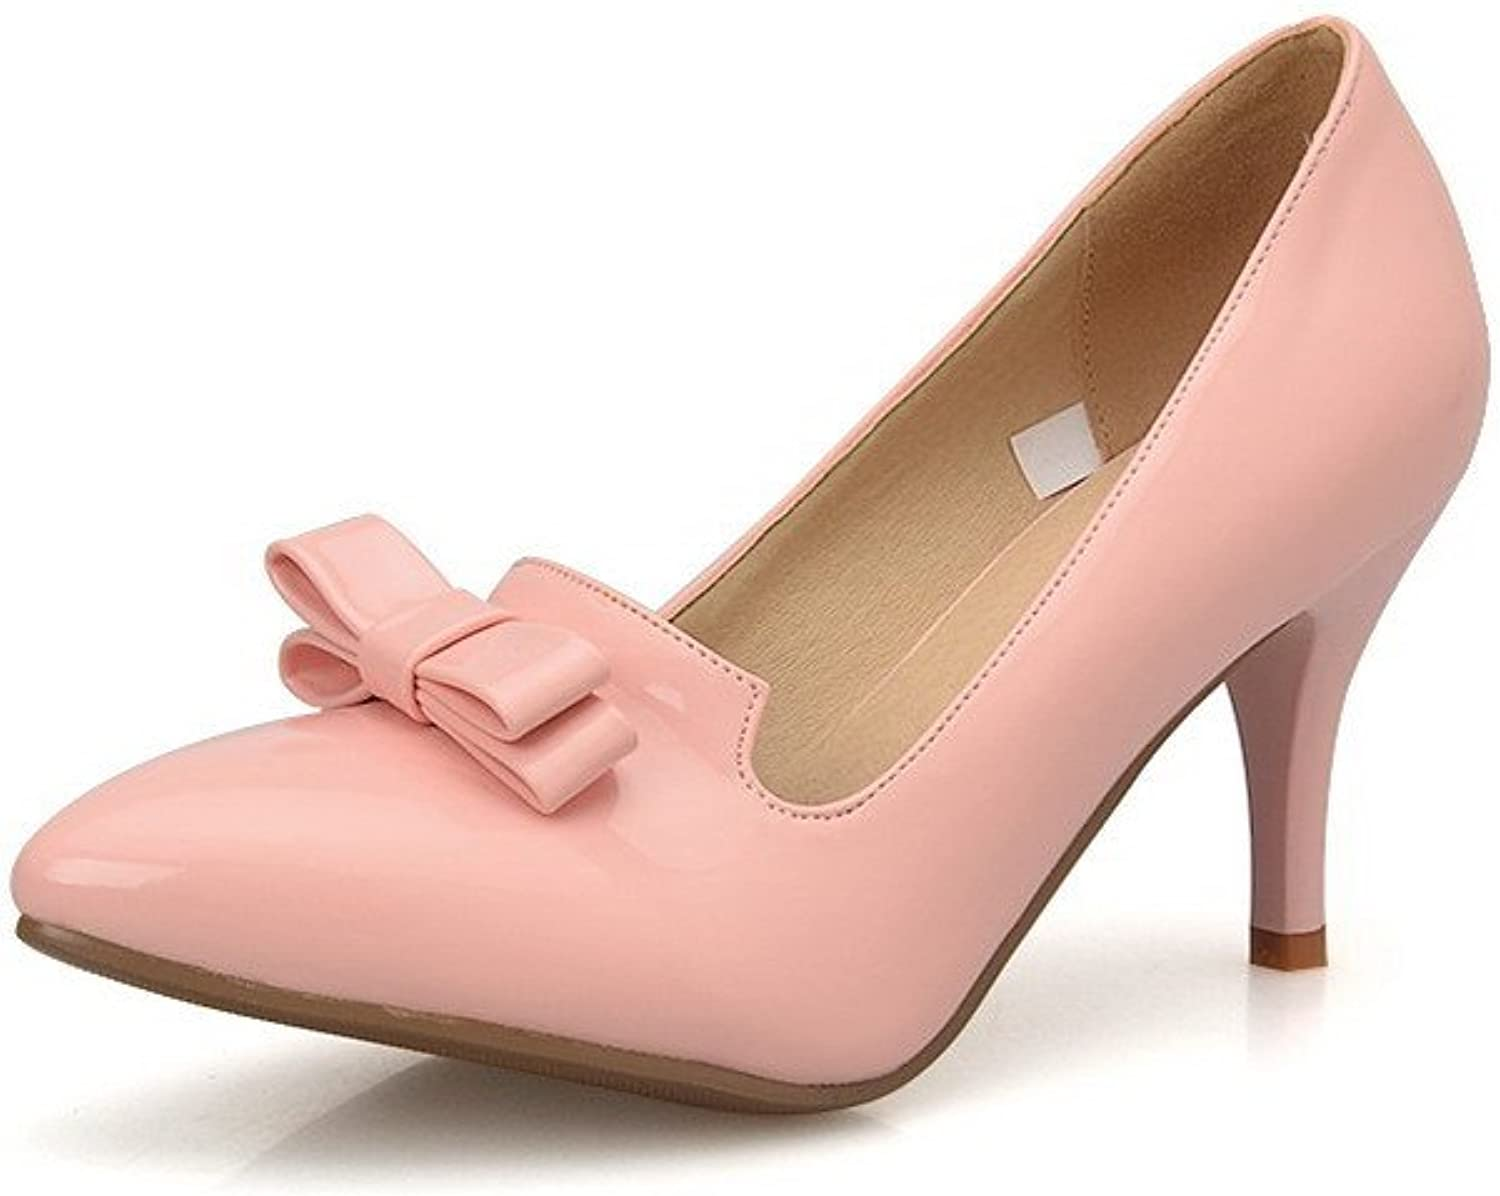 AmoonyFashion Women's Pointed Closed Toe High-Heels Patent Leather Solid Pull-on Pumps-shoes